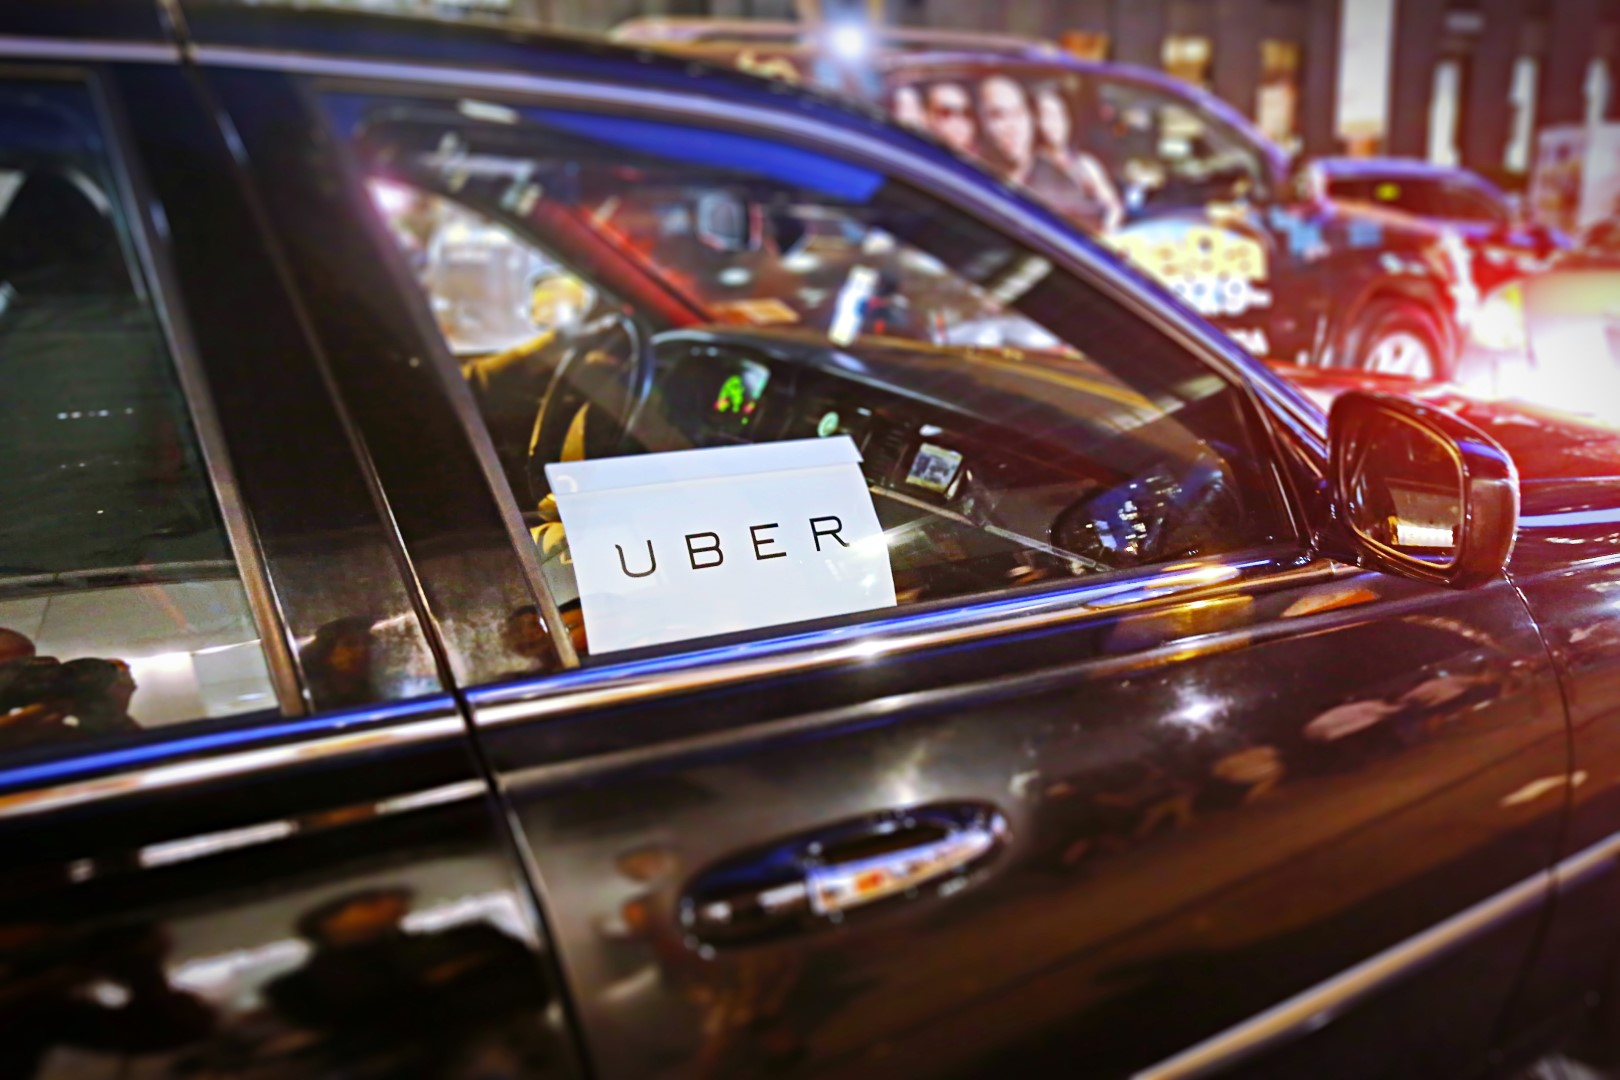 Uber announces support for 'unified framework' for Alabama